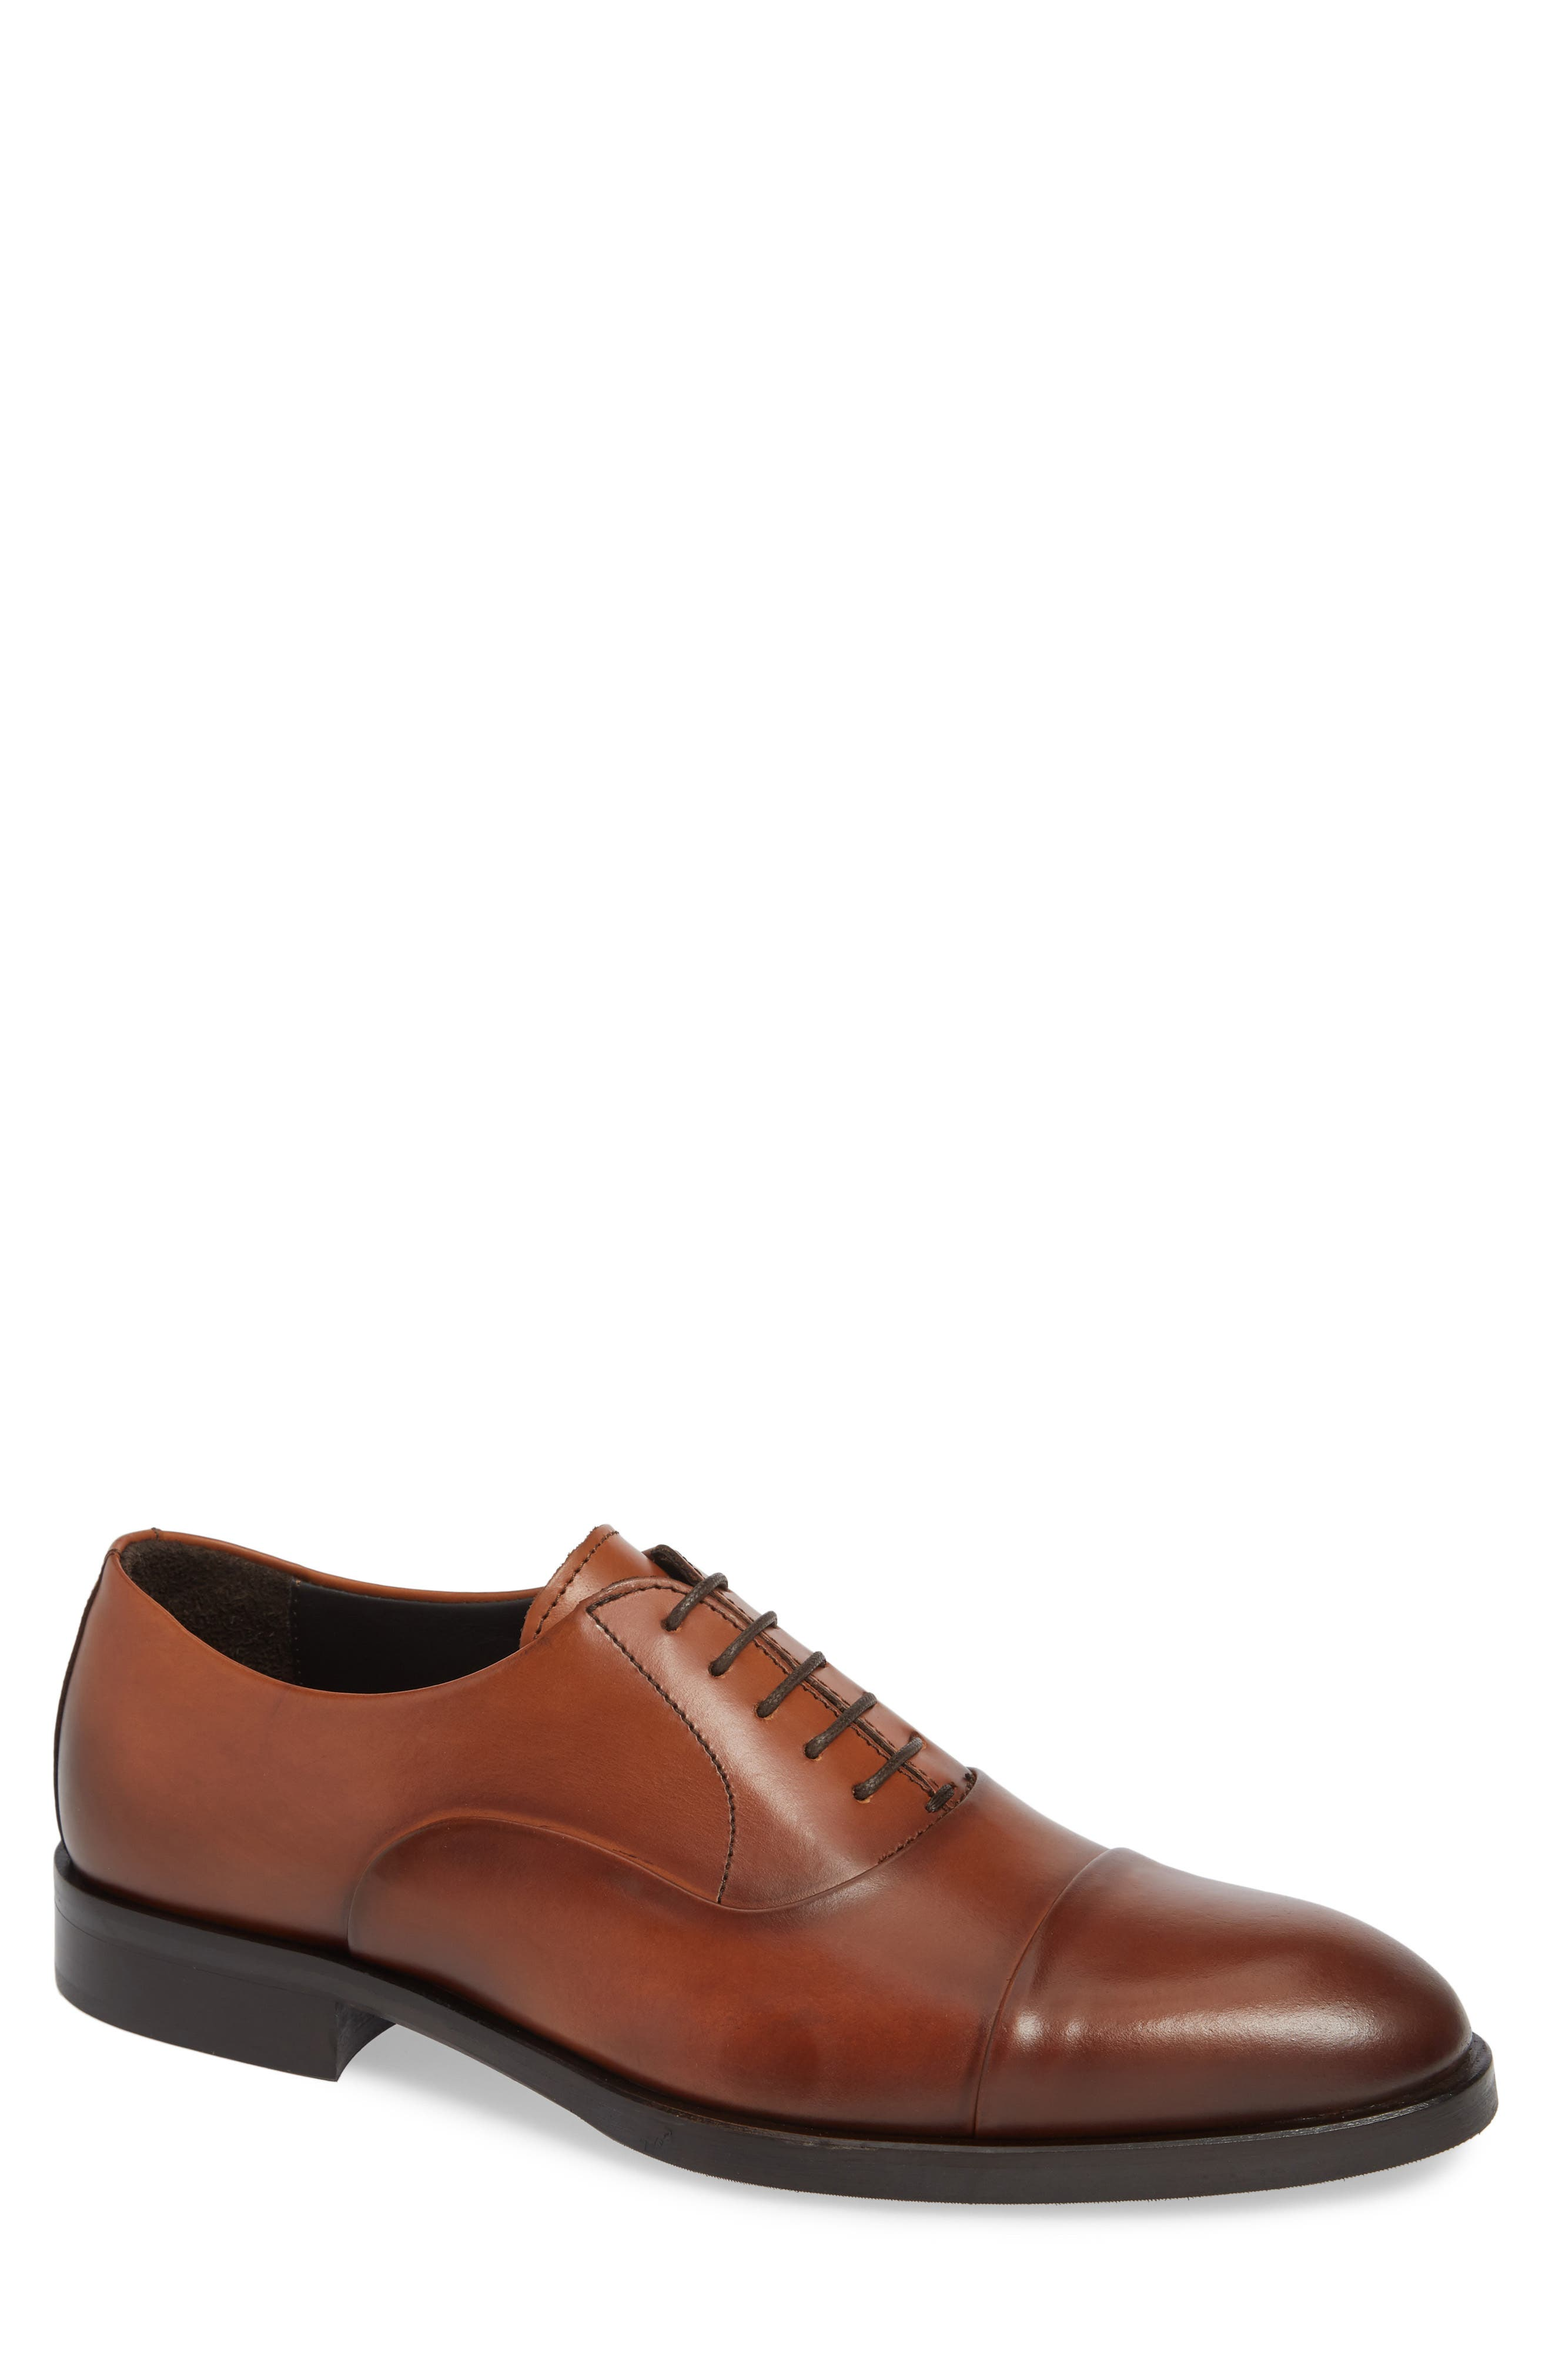 TO BOOT NEW YORK Men'S Hudson Leather Cap-Toe Oxfords in Vitello Cuoio Leather